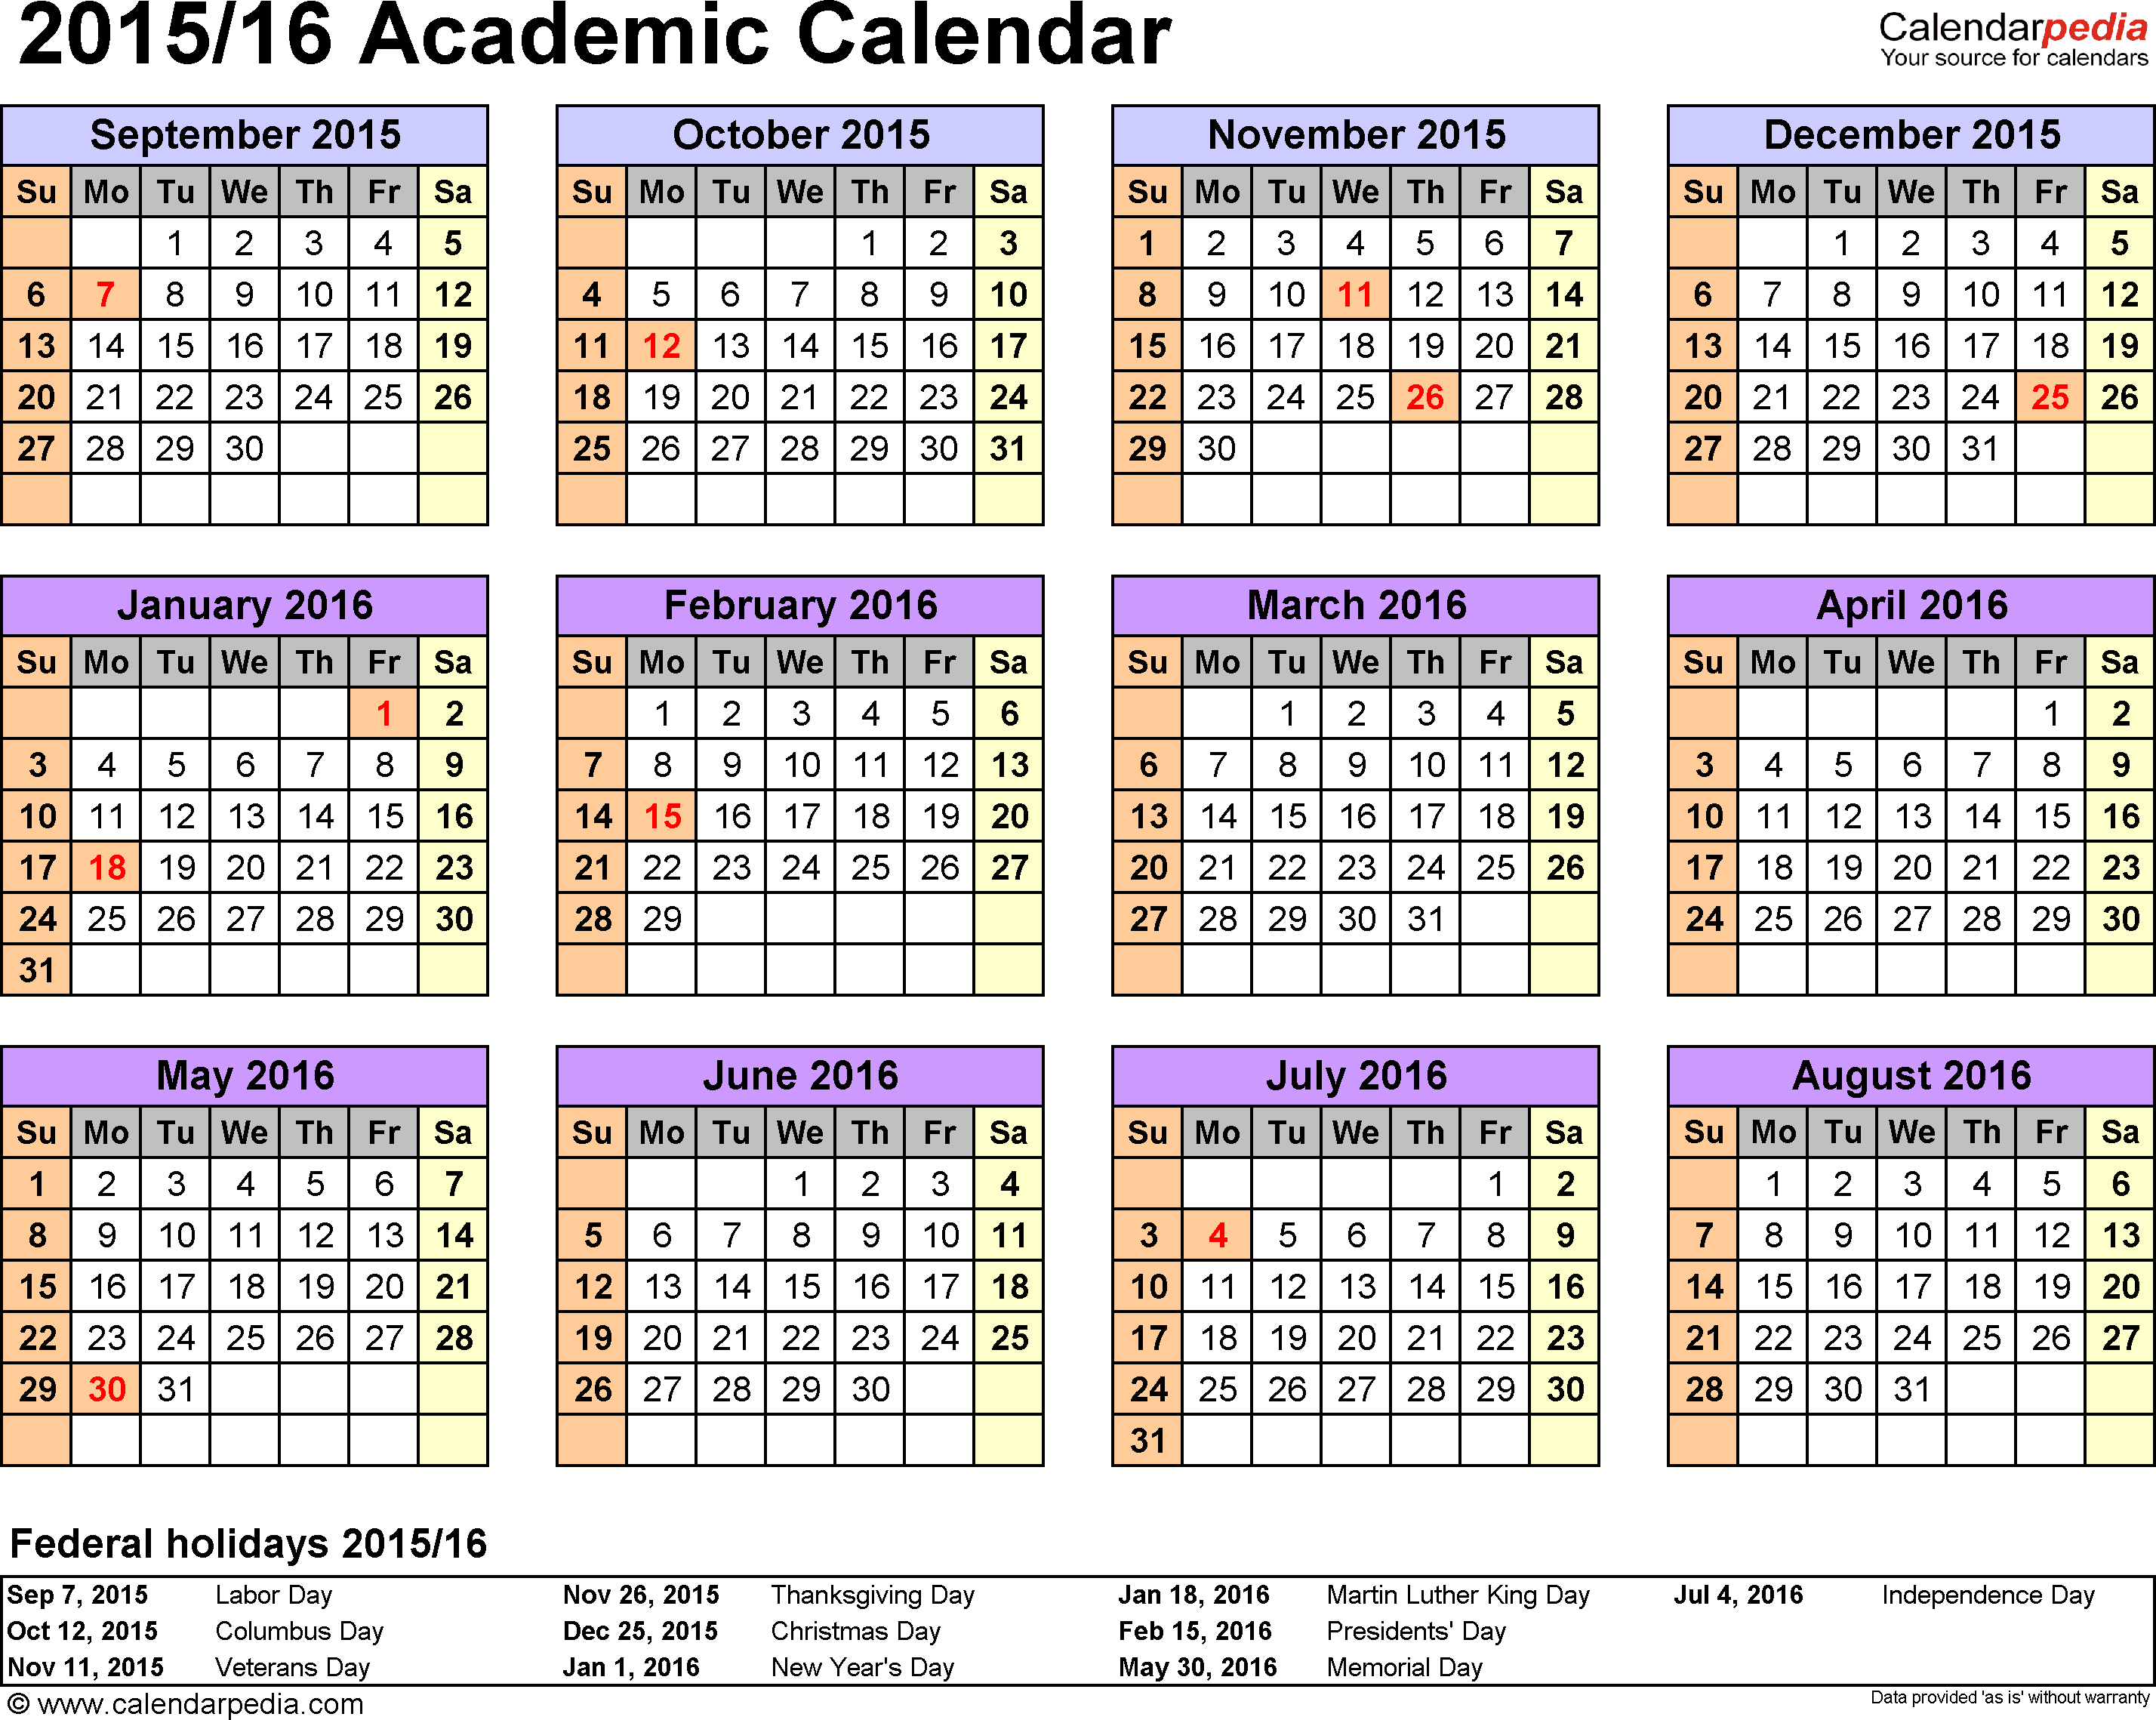 Template 4: Academic calendar 2015/16, in PDF format, landscape, 1 page, year at a glance